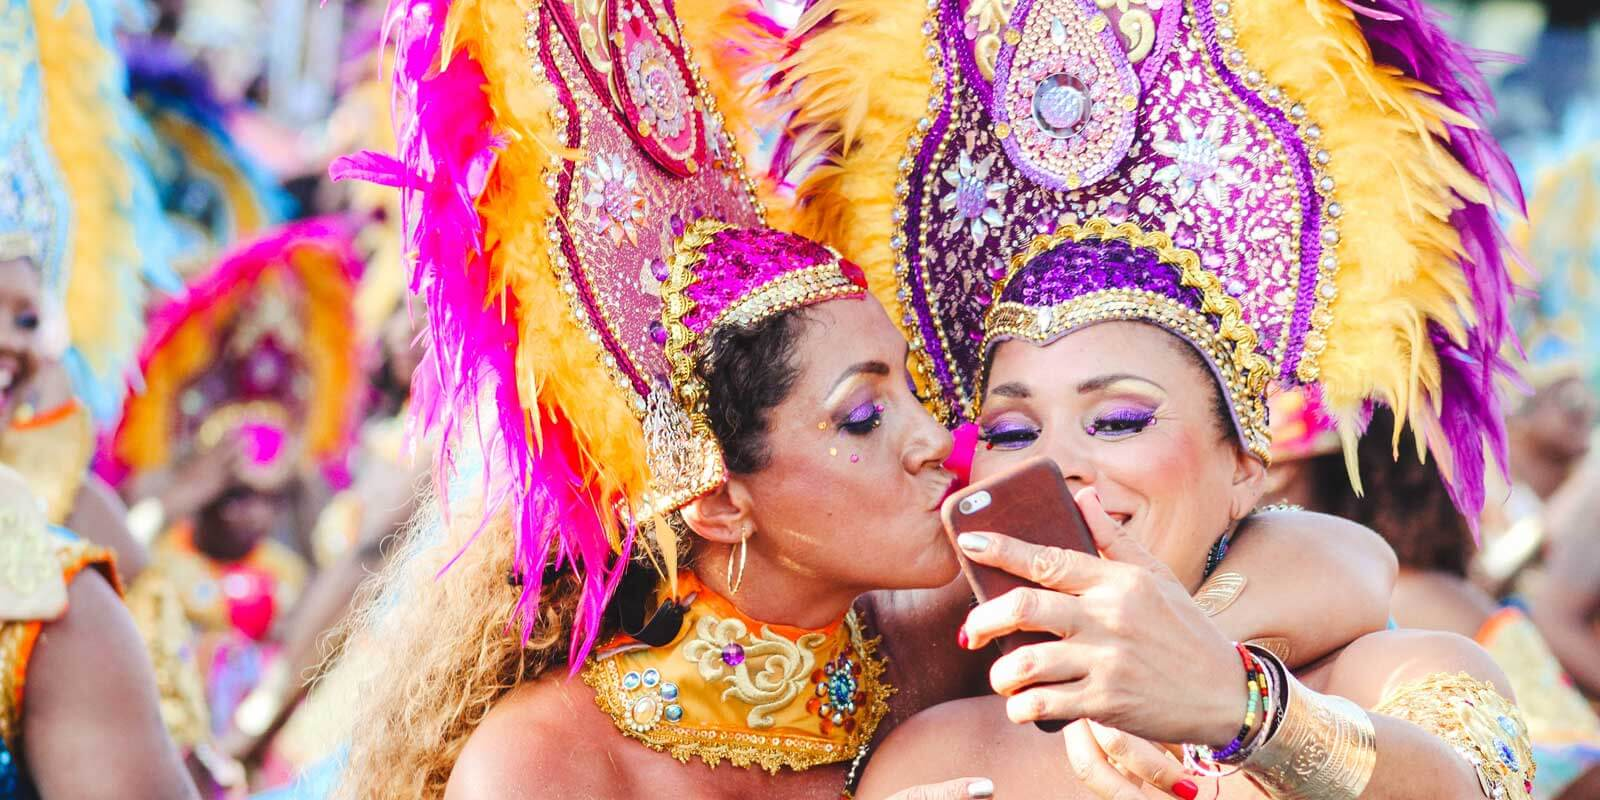 Two women in elaborate Carnival costumes and head dress taking a selfie with a phone.